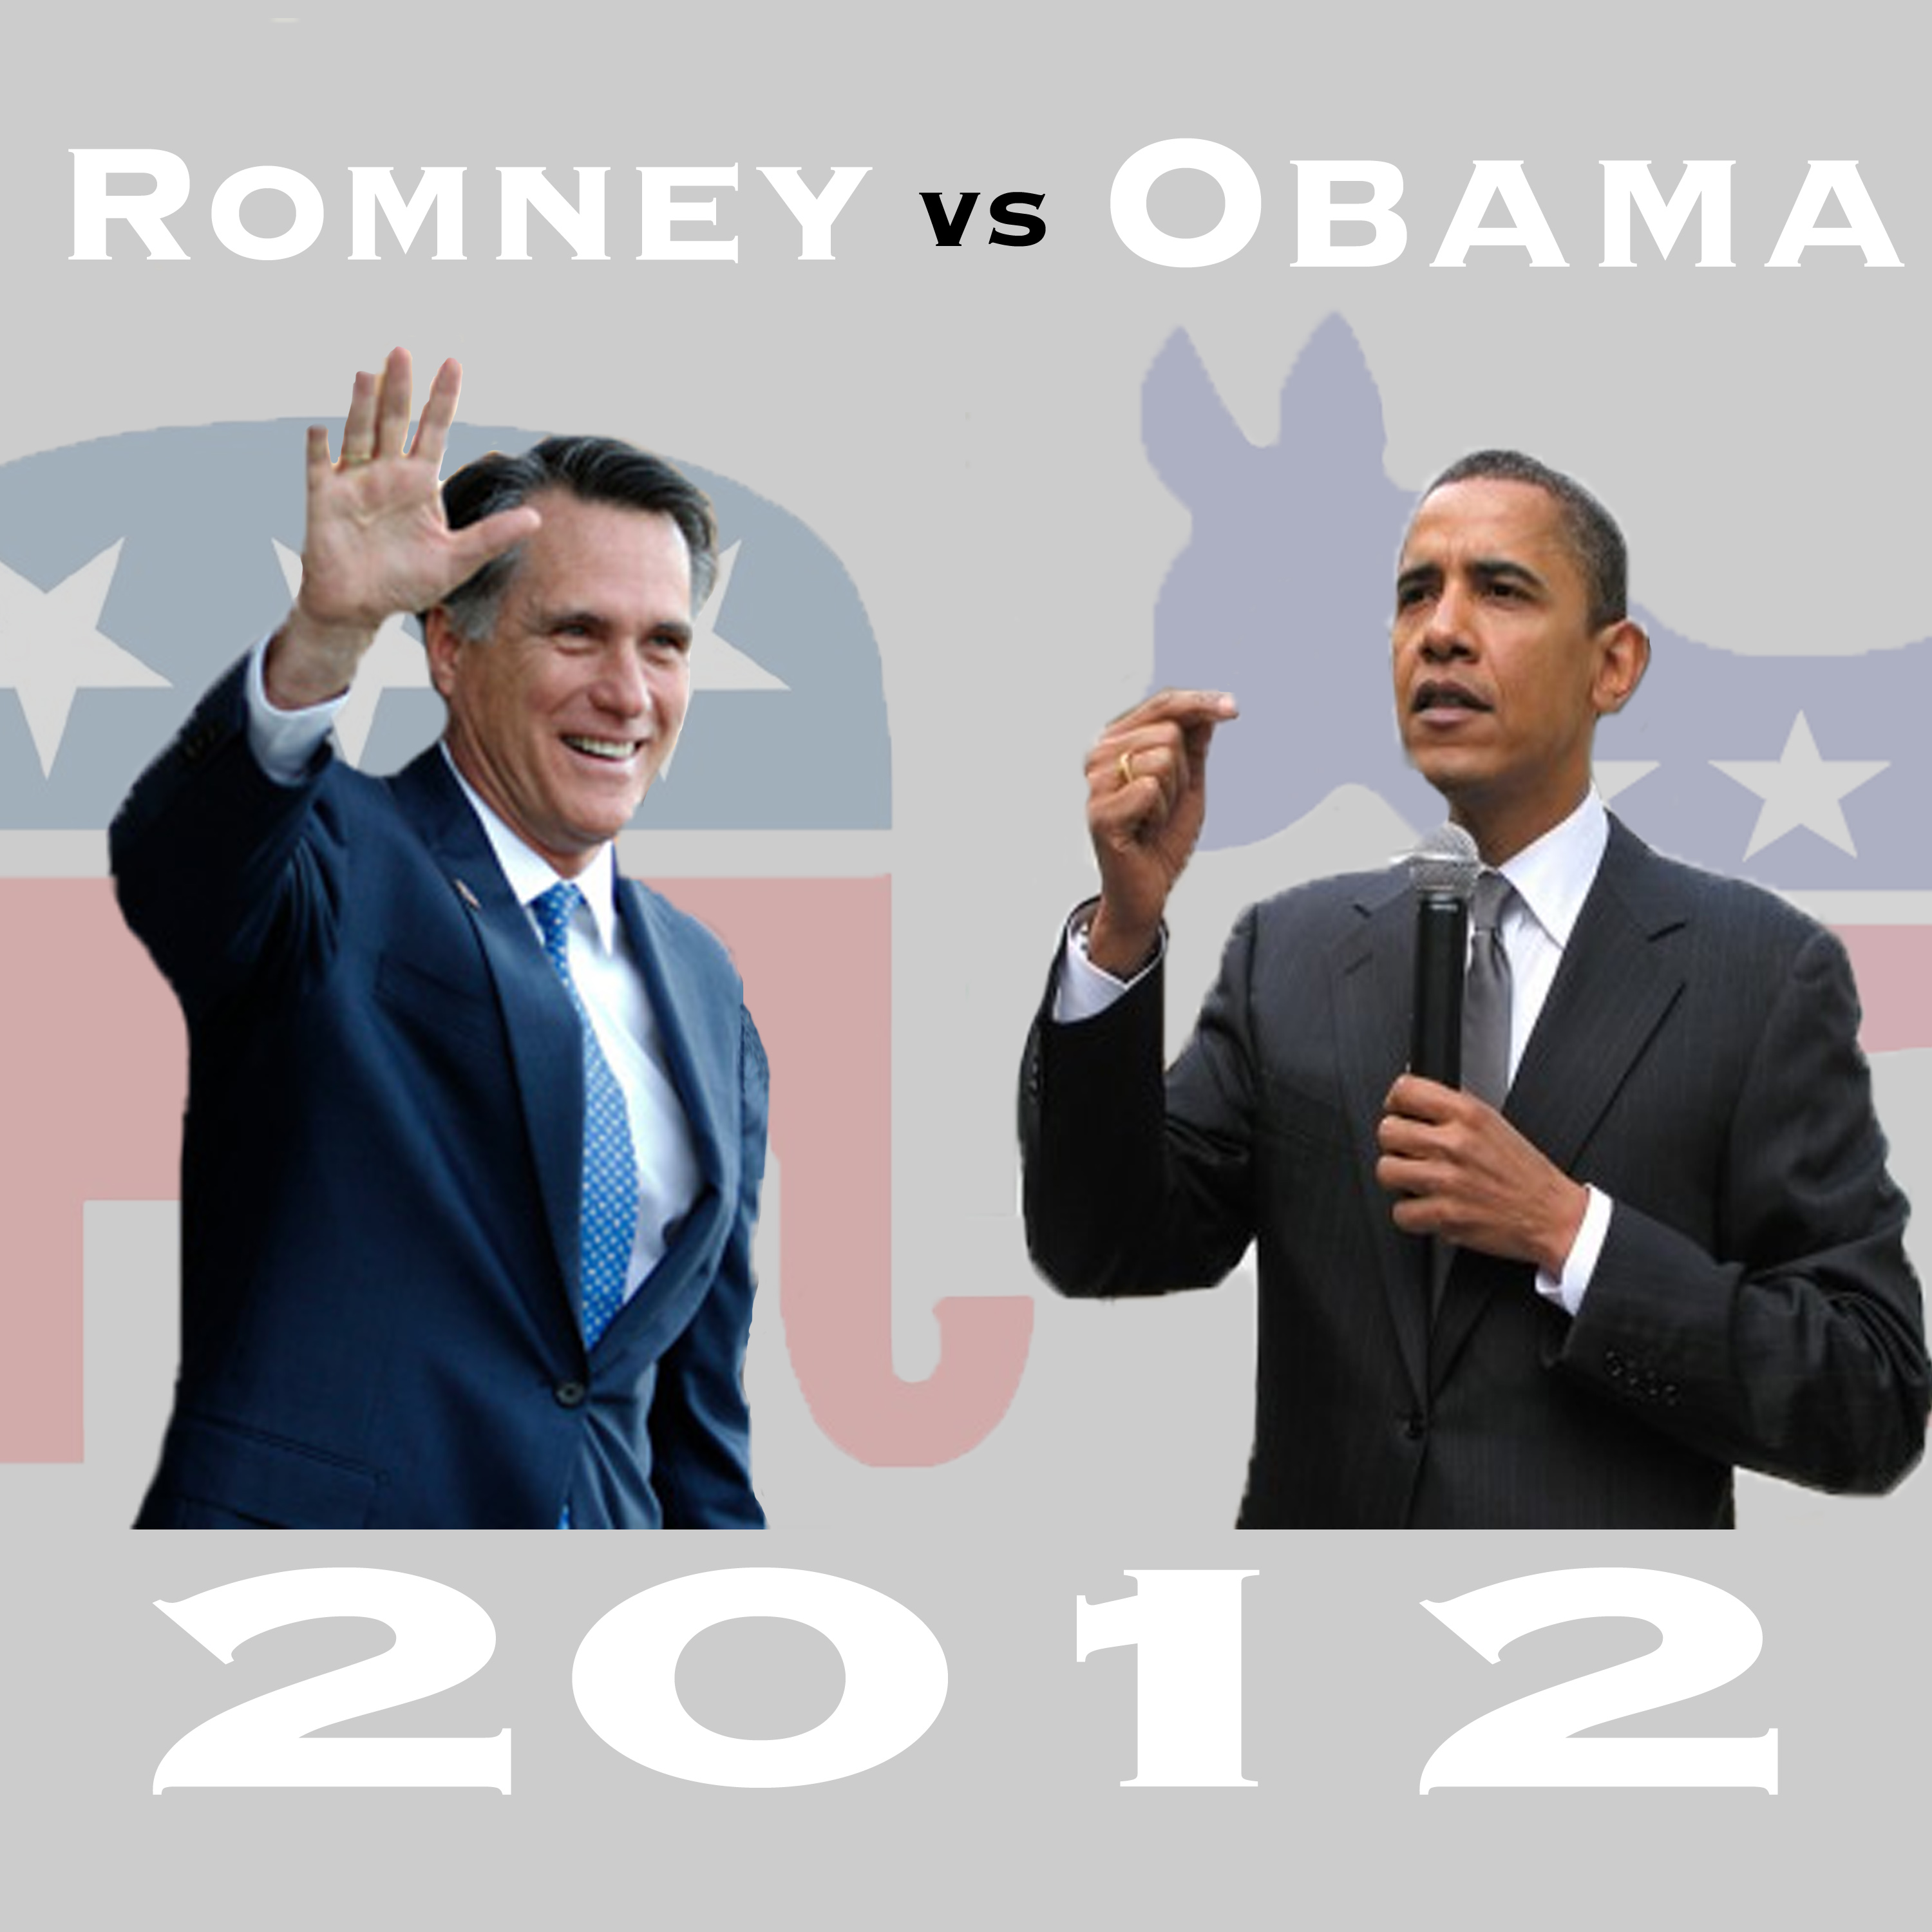 The presidential candidates for the 2012 election are Mitt Romney and Barack Obama. Credit, Obama photo: The Rio Times, Creative Commons. Credit, Romney photo: The Citizens Compass, Creative Commons. Credit, graphic: Jackson Tovar/The Foothill Dragon Press